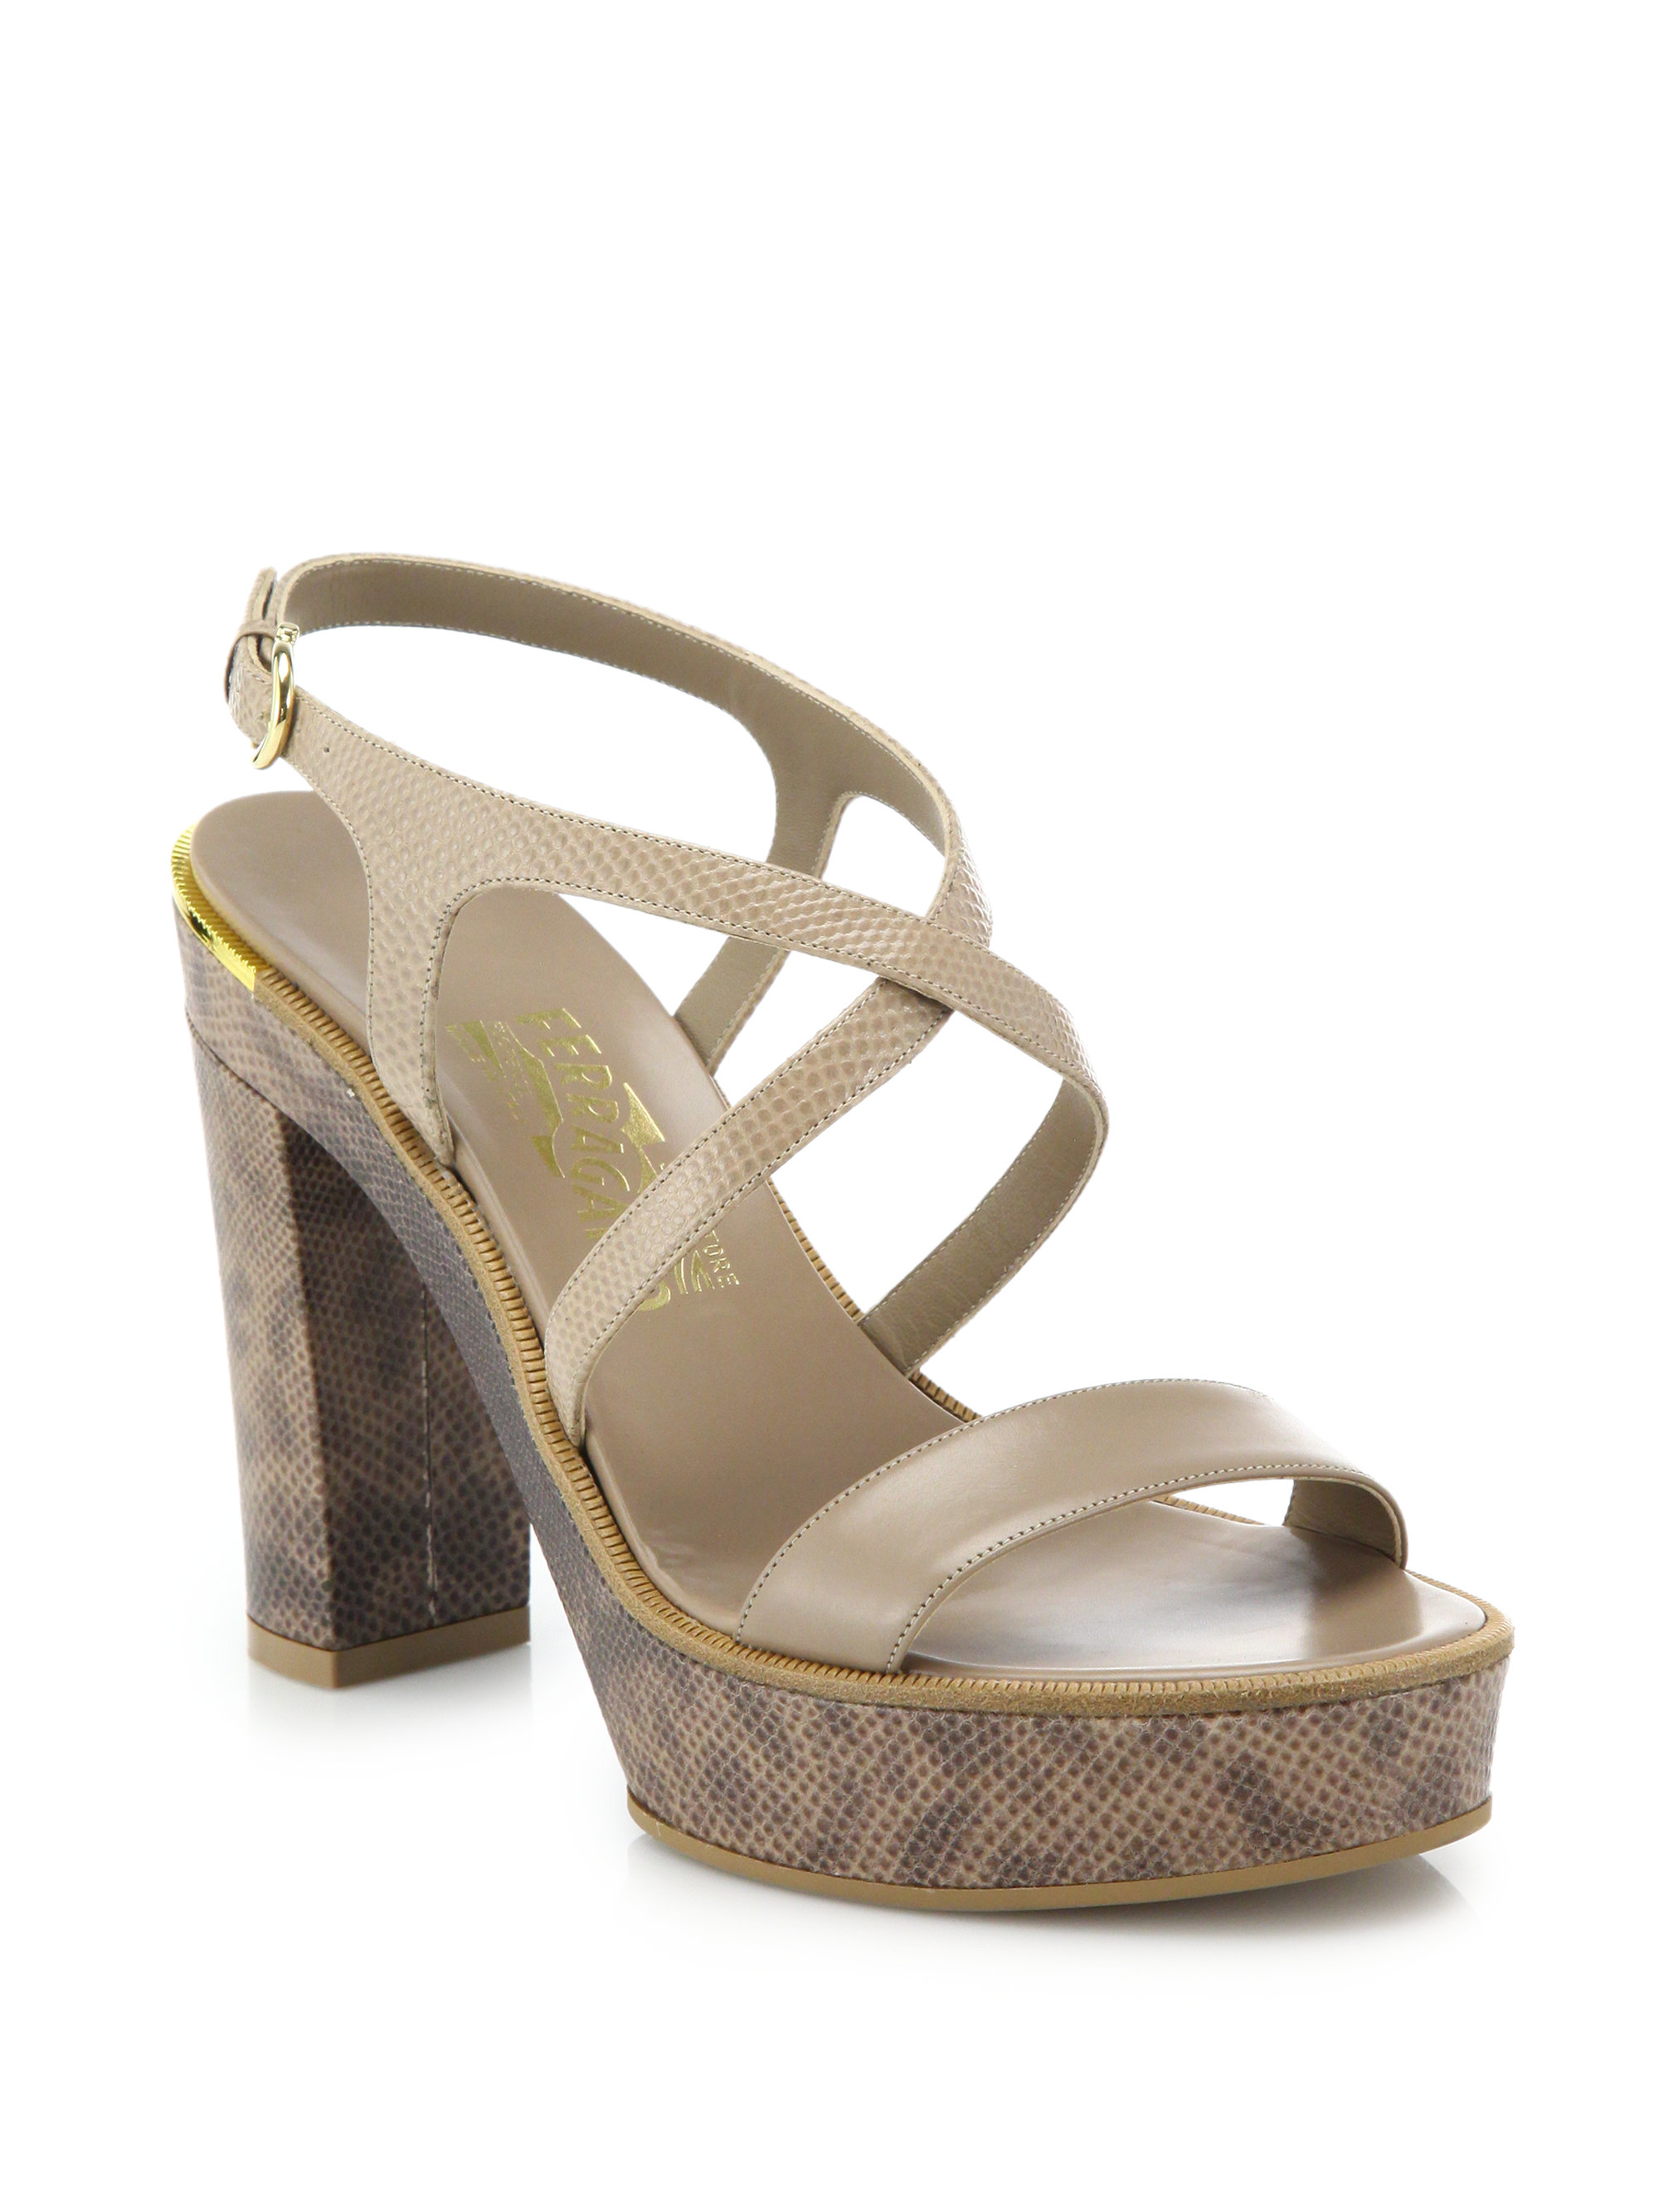 766e325dd128 Lyst - Ferragamo Gina Python-embossed Leather Platform Sandals in ...